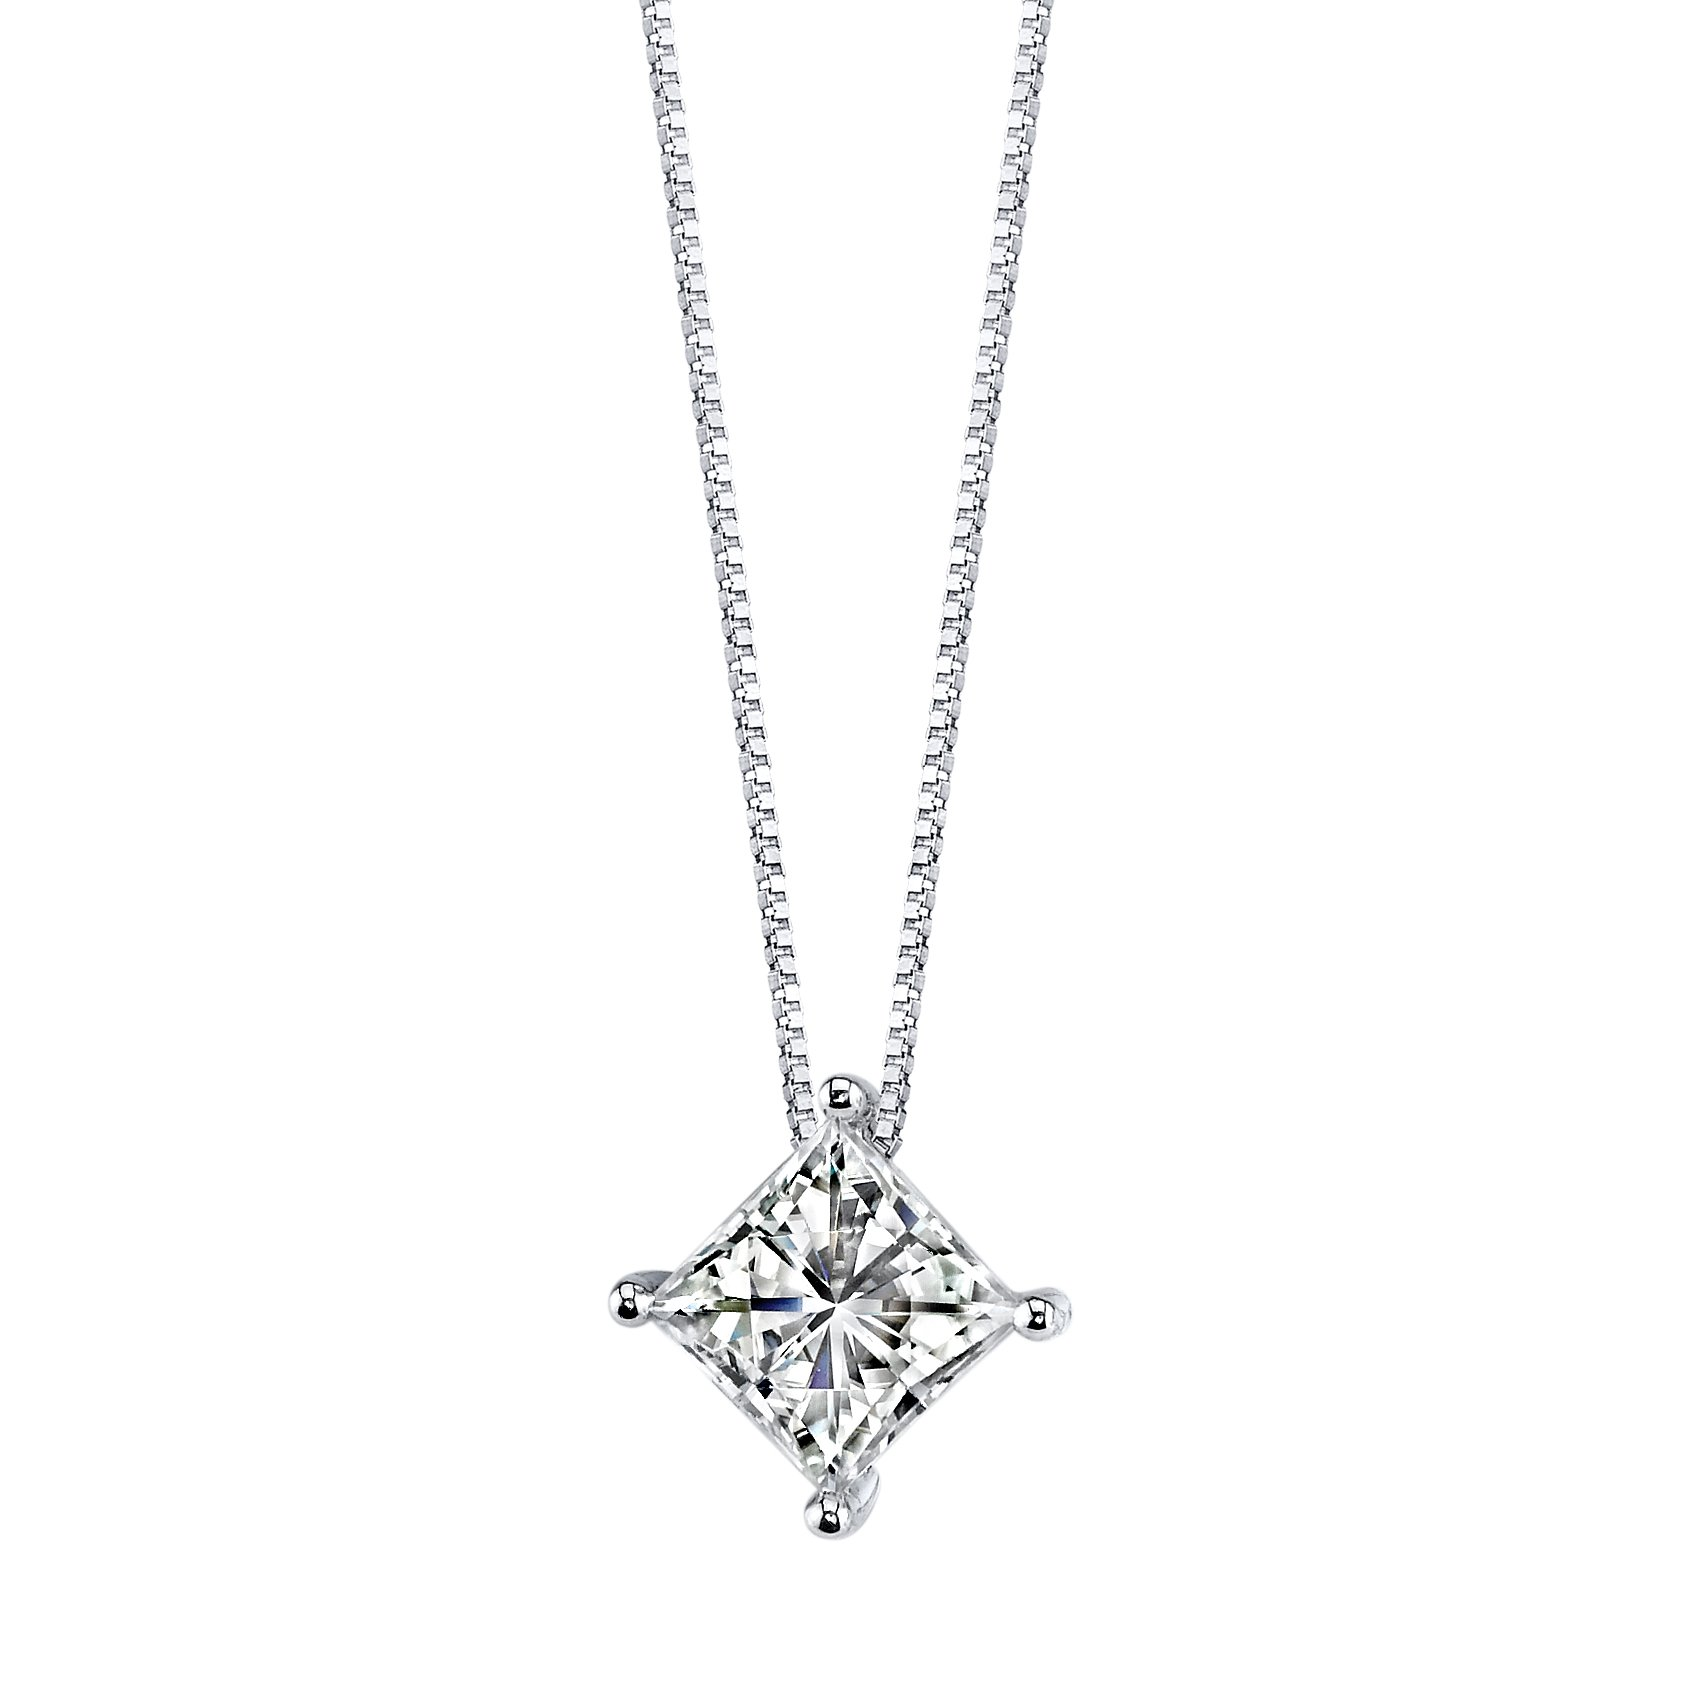 14K White Gold Square Brilliant Cut 8.0mm Moissanite Pendant Necklace, 3.10ct DEW By Charles & Colvard